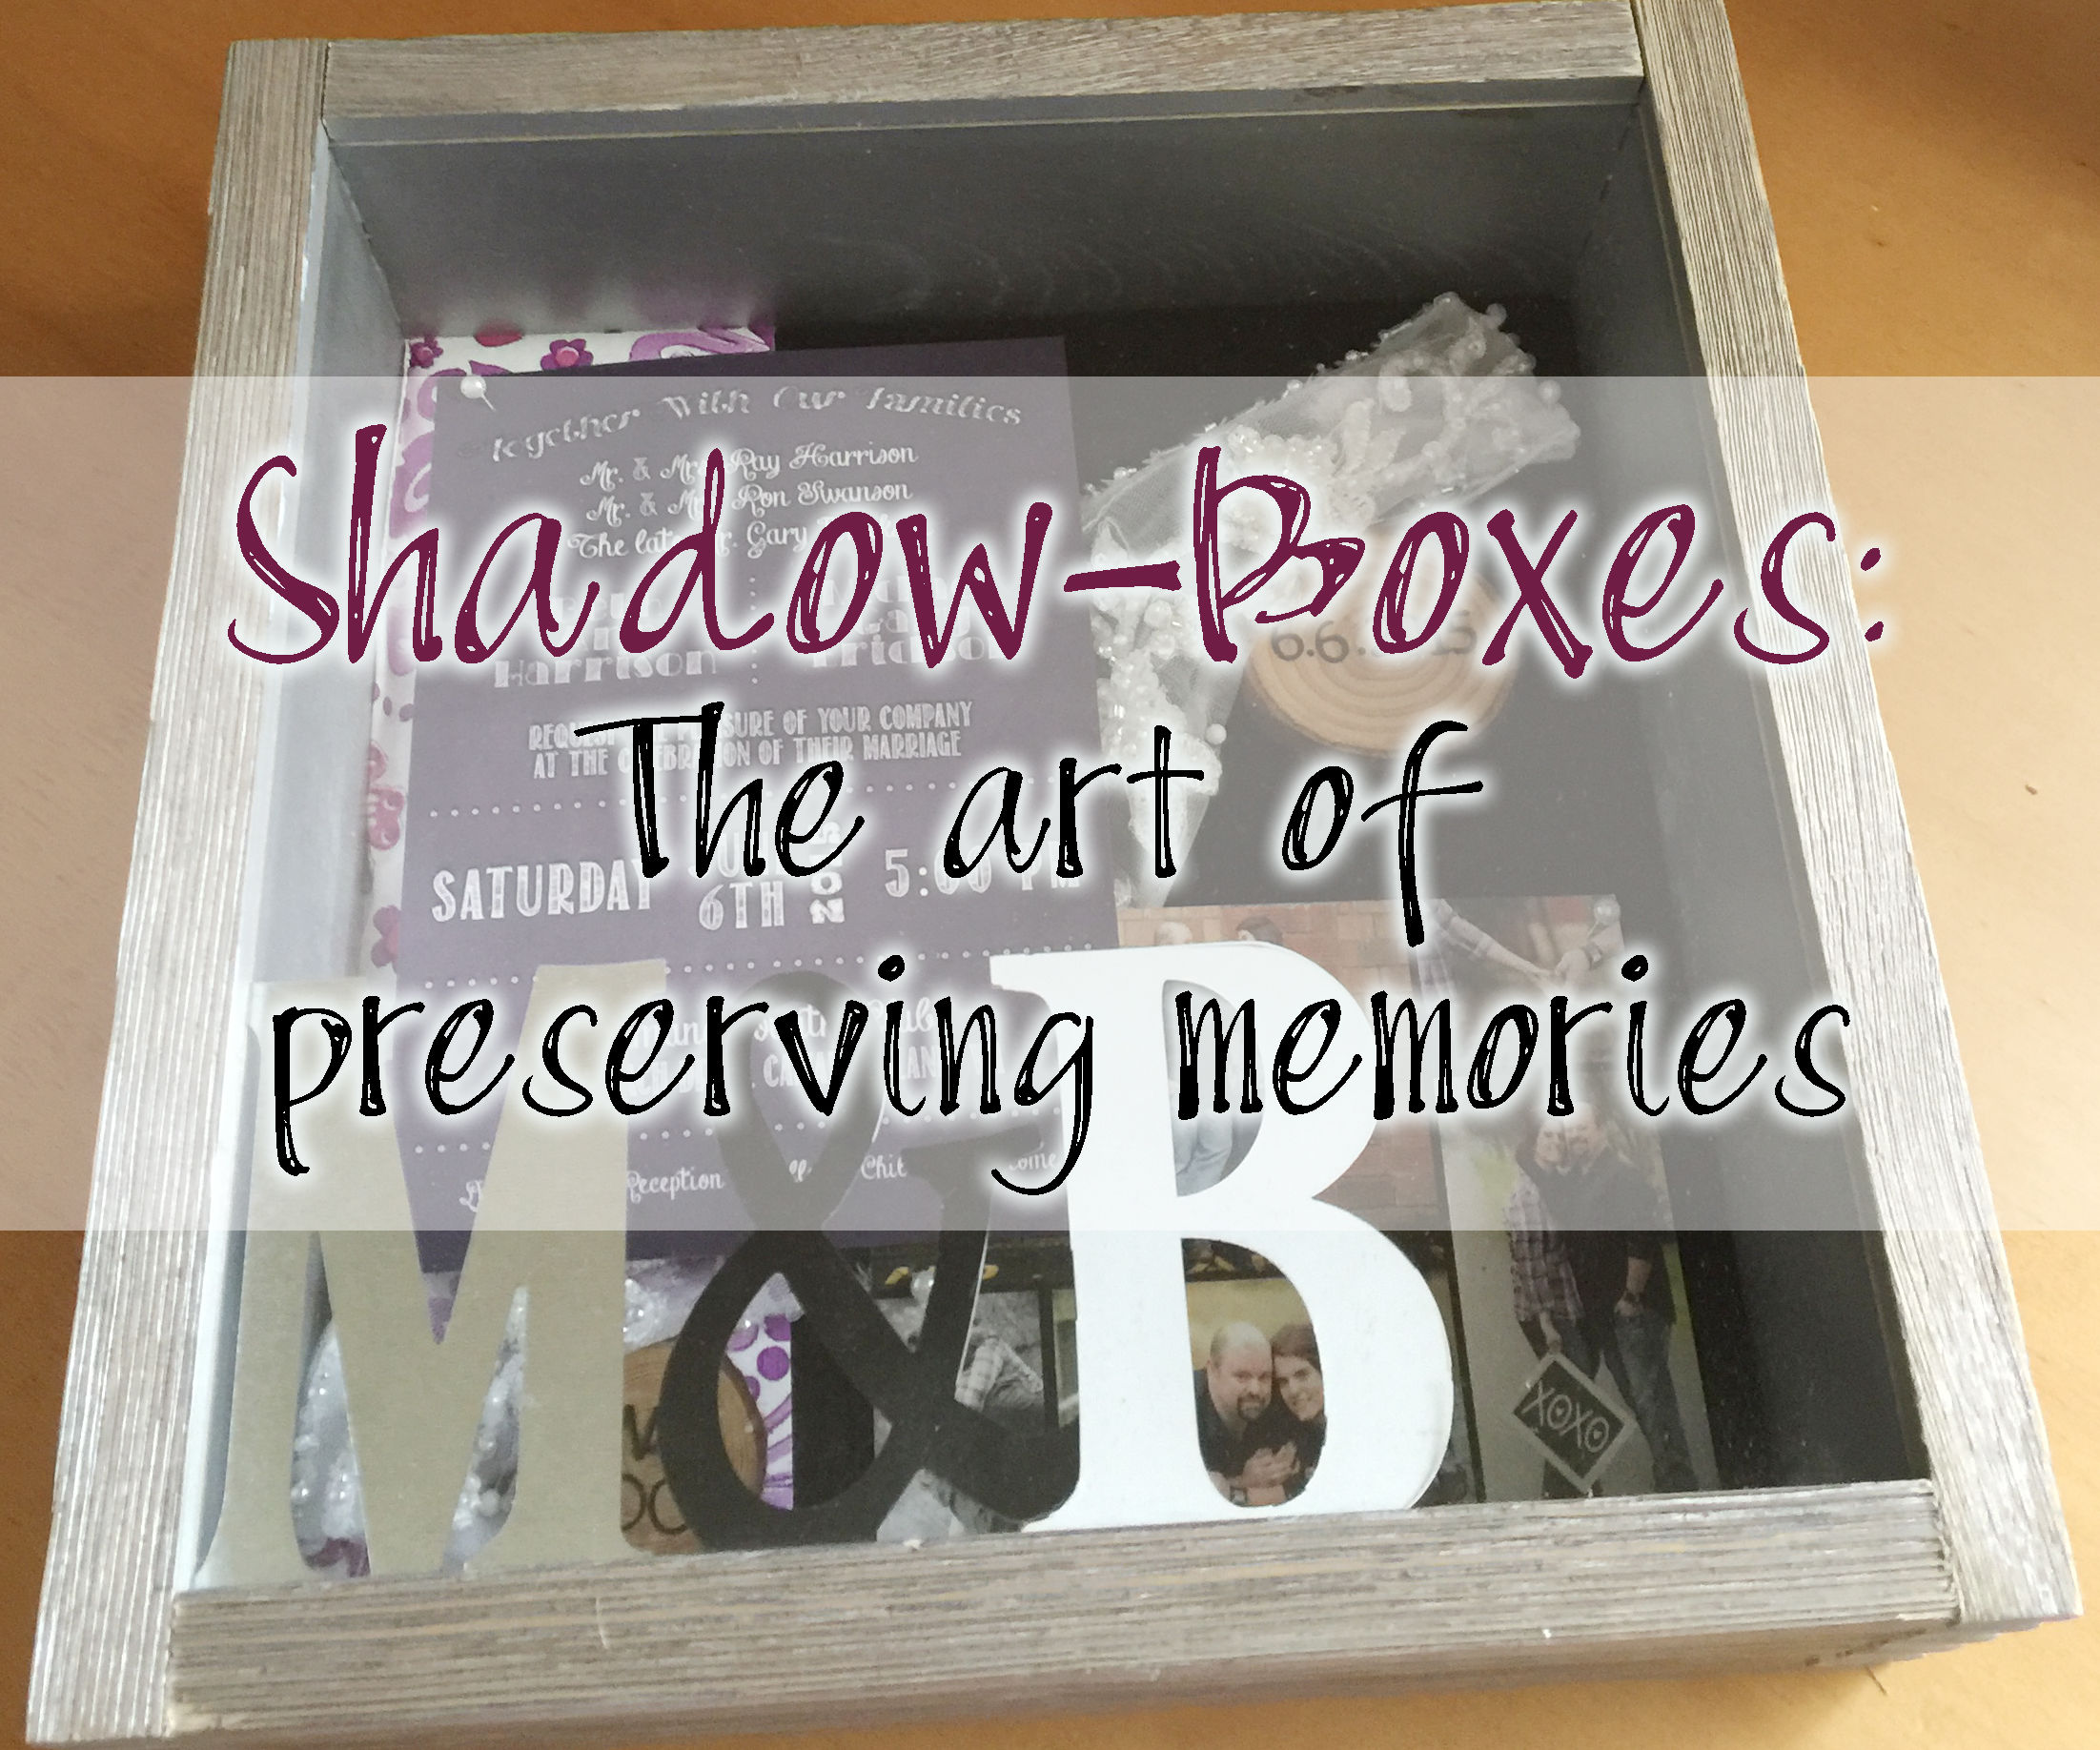 Saving Memories: The art of creating a shadow-box